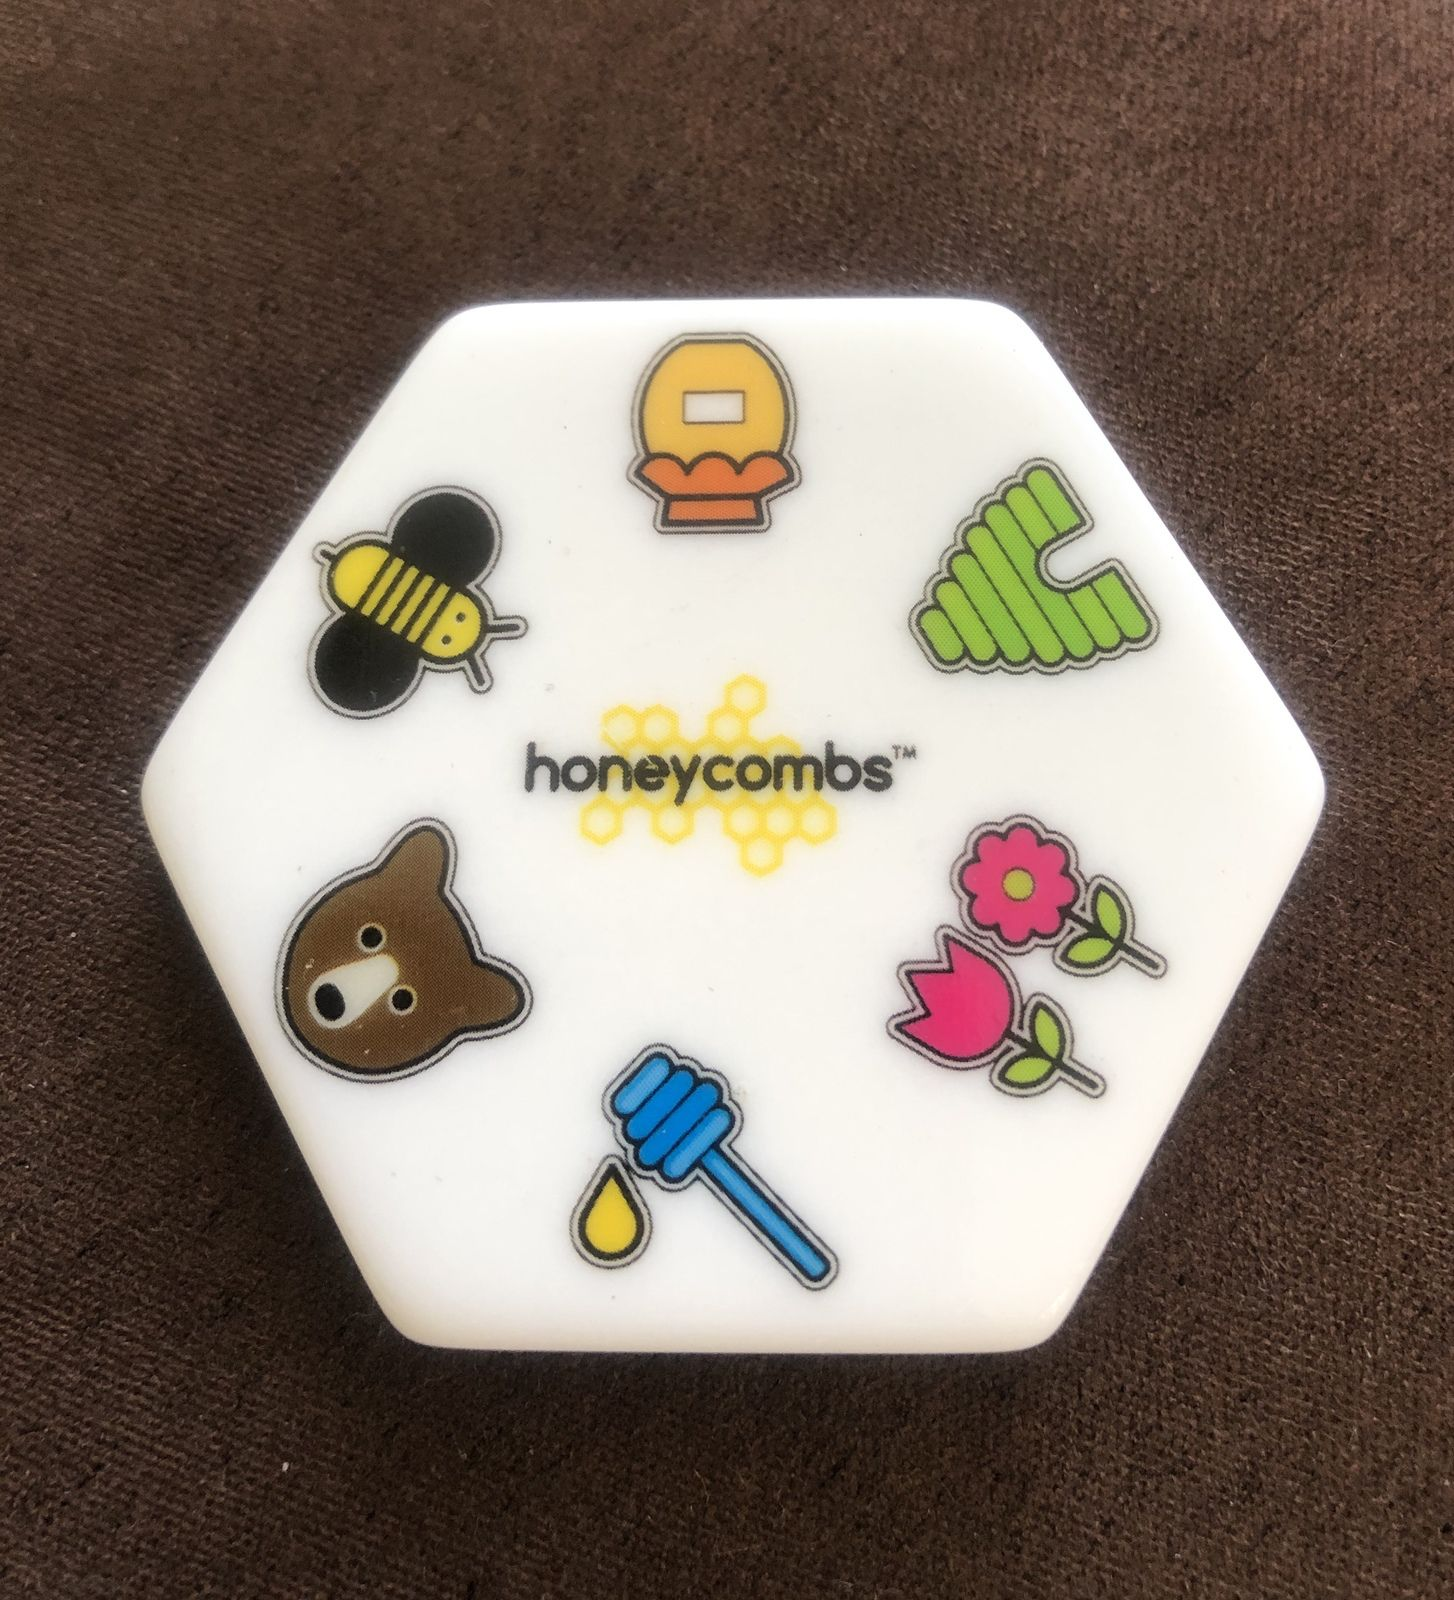 Honeycombs Wilson Jeux